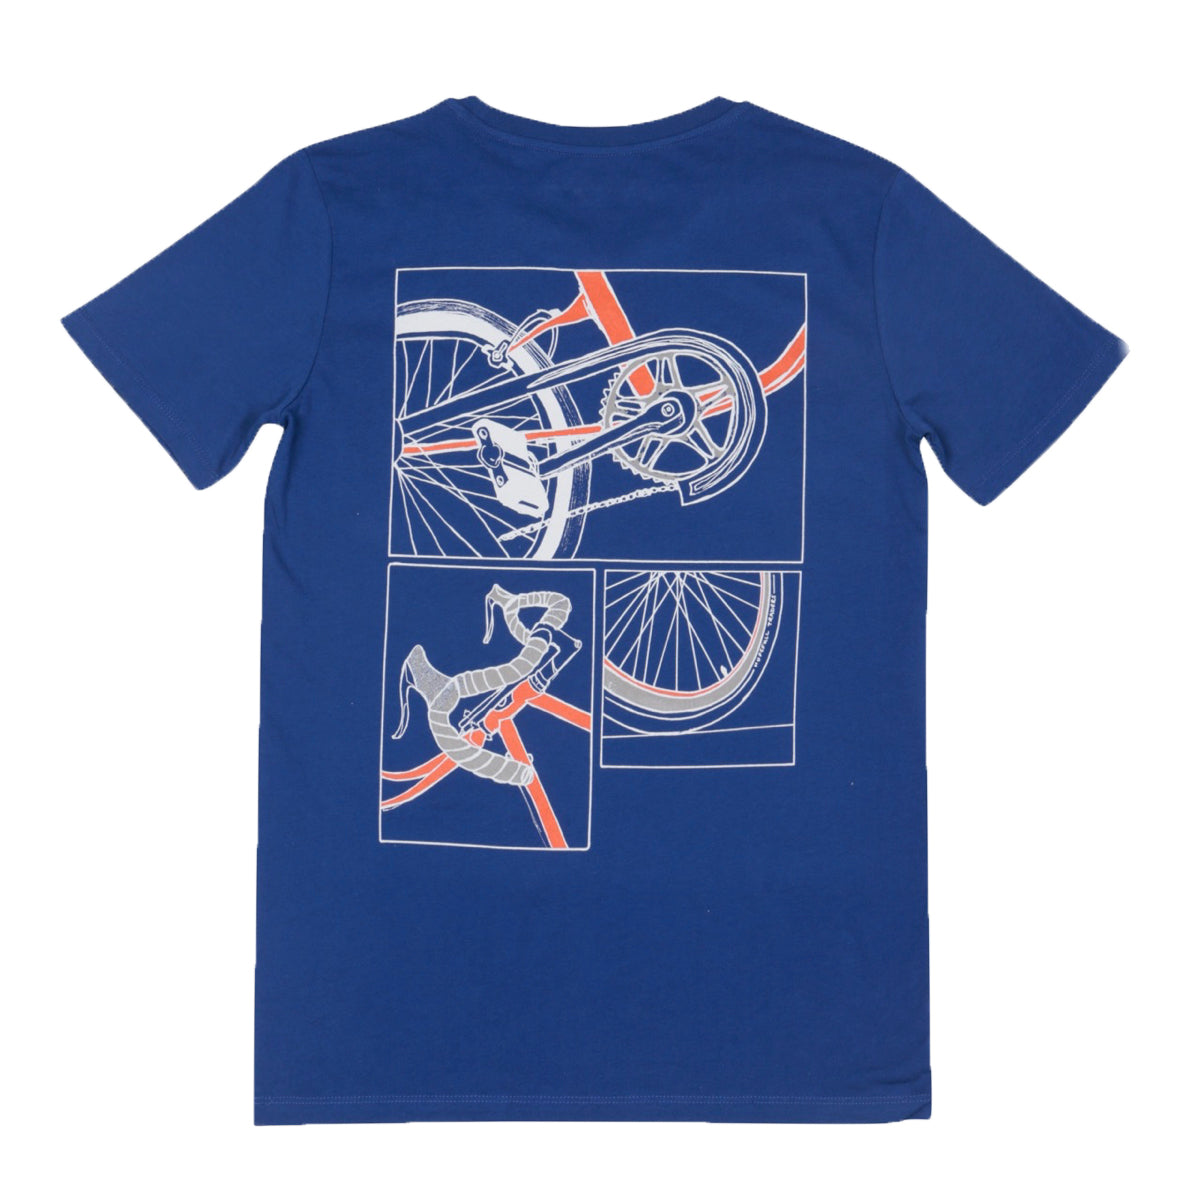 David's Bike Organic Tee // Royal